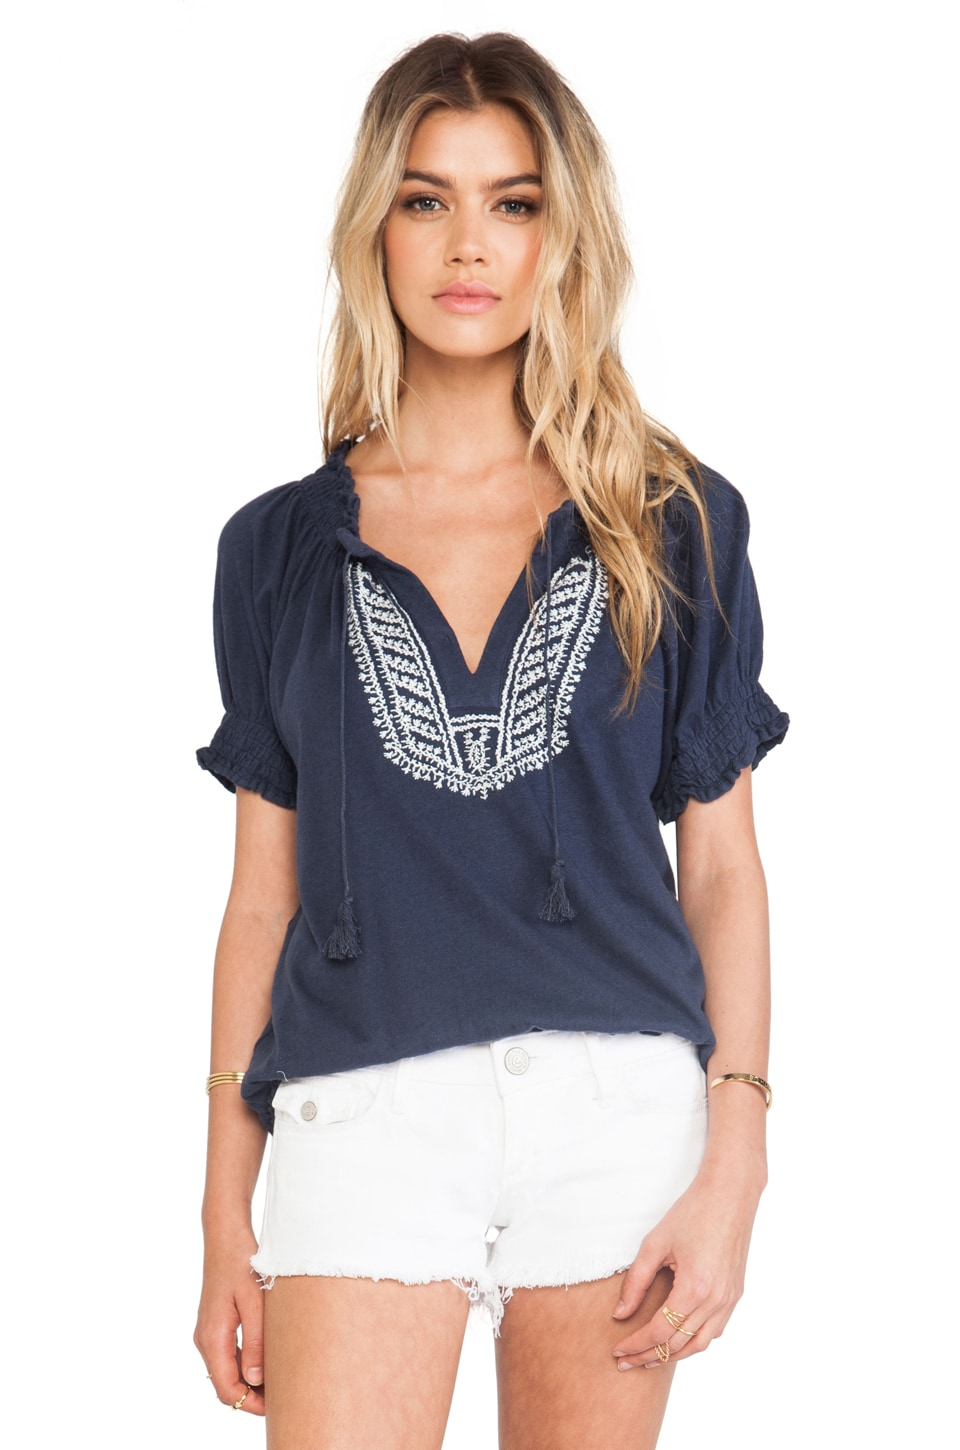 Soft Joie Harmony Blouse in Dark Denim & Porcelain